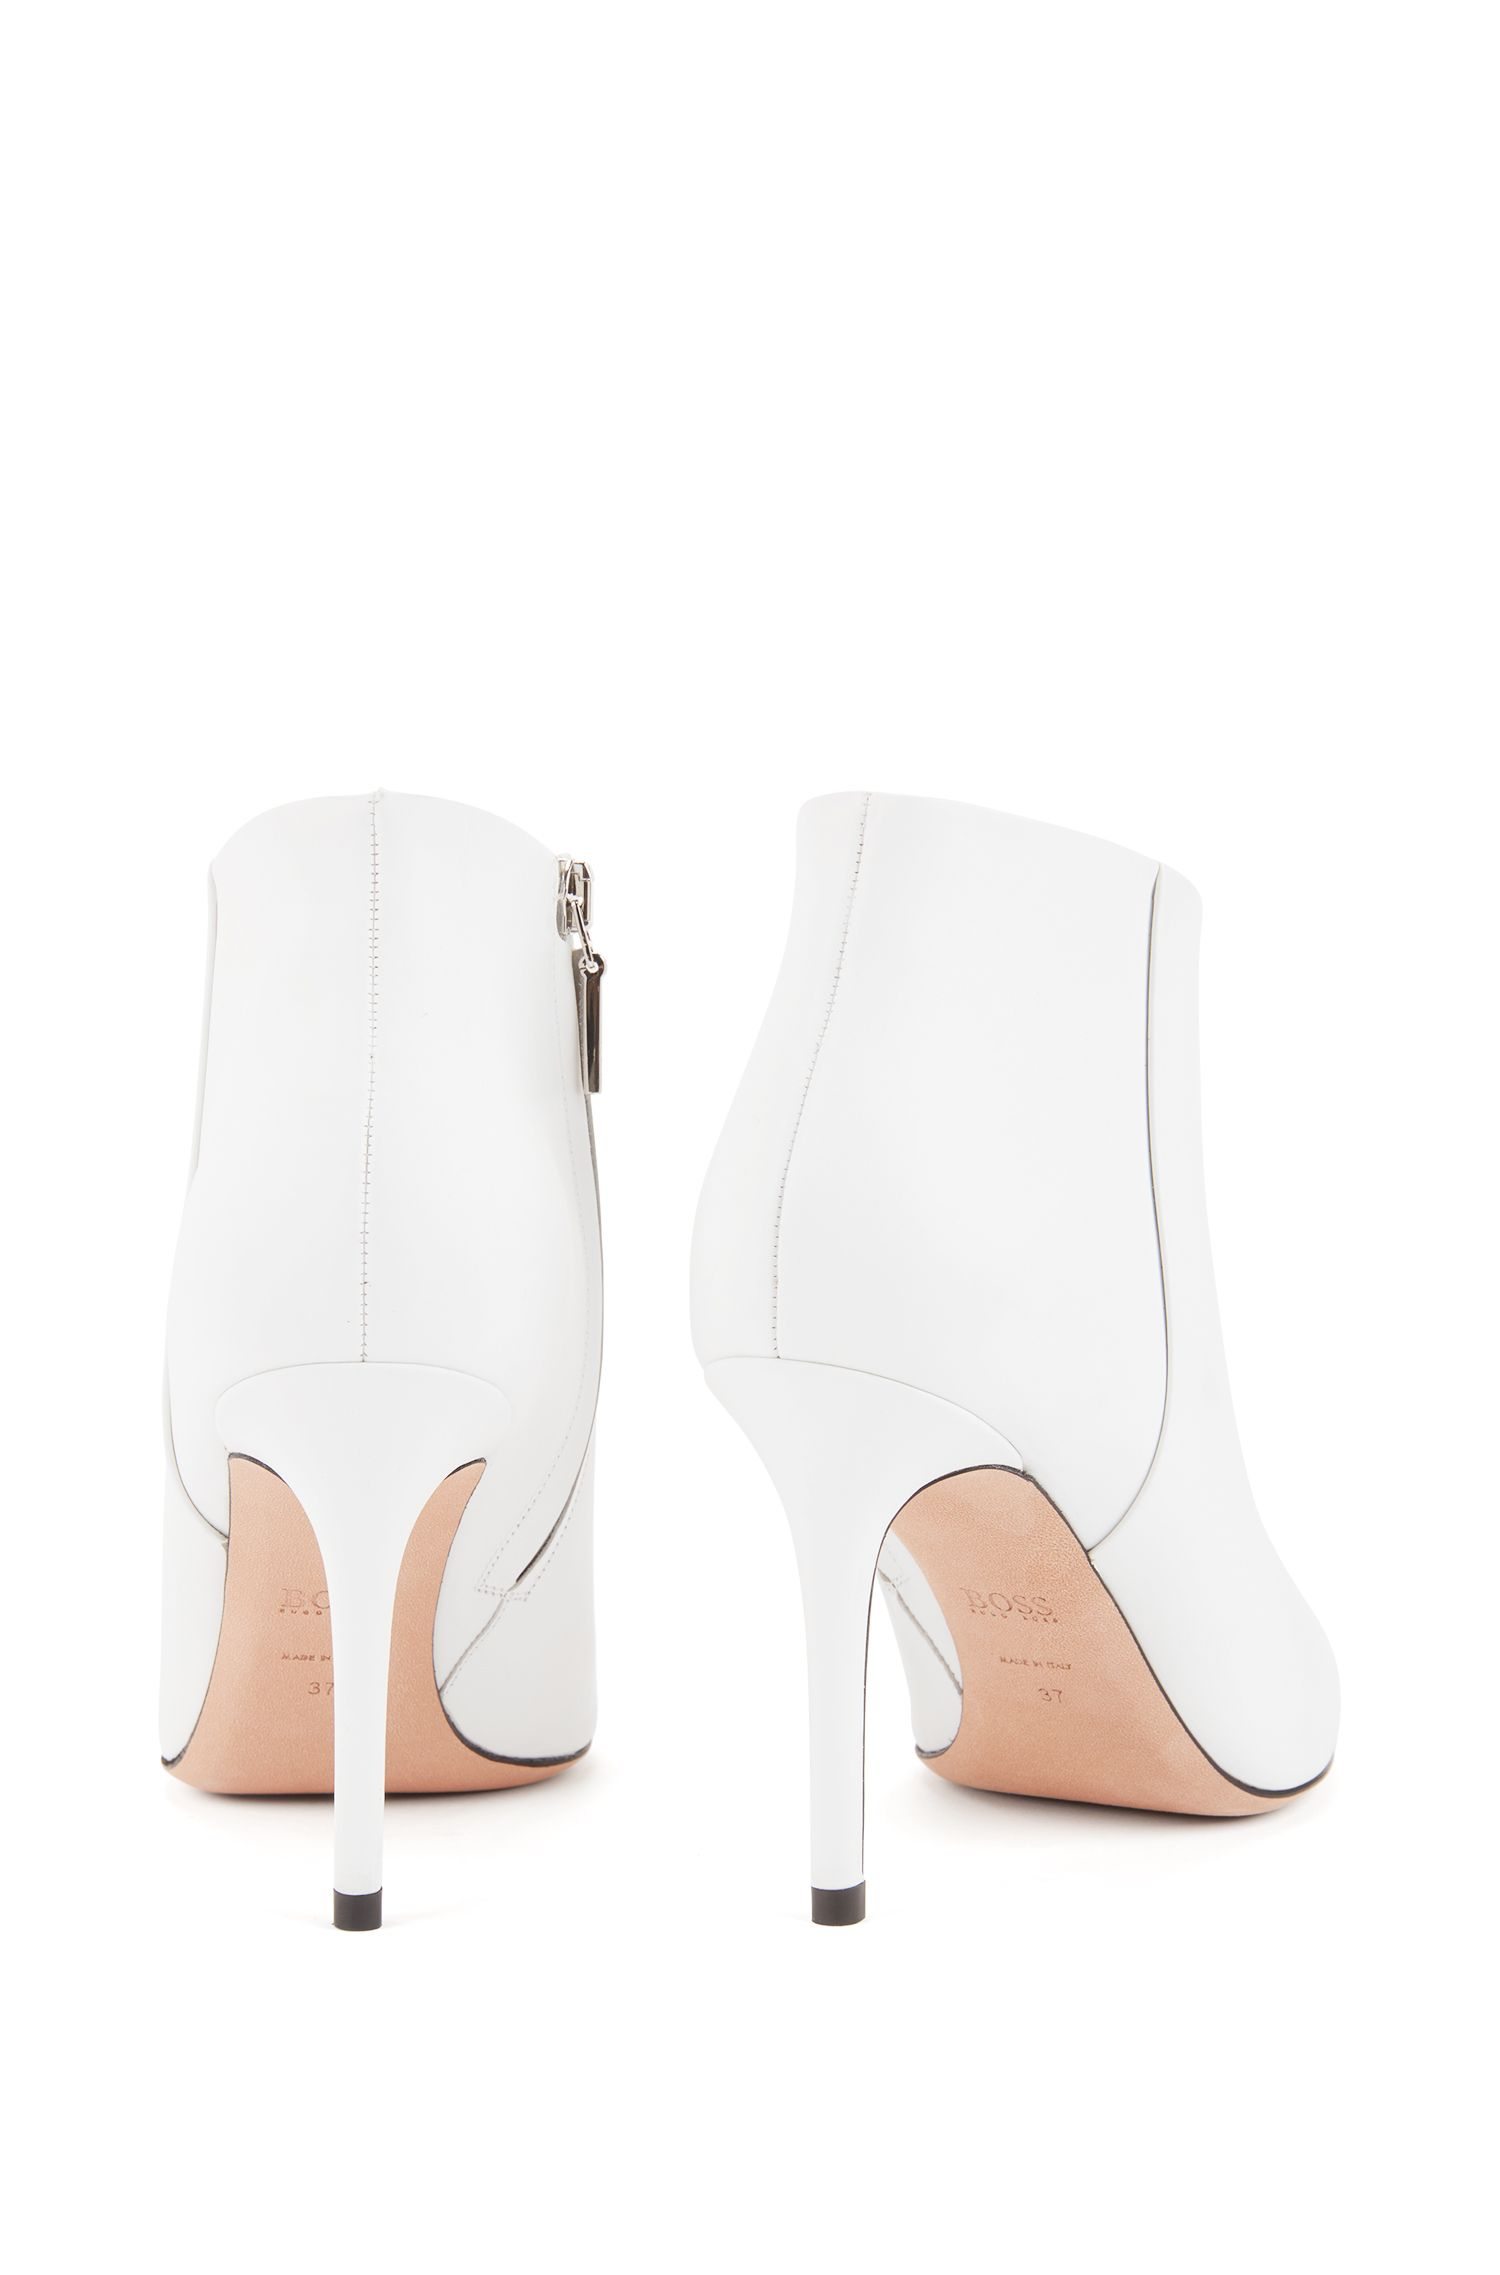 High-heeled ankle boots in Italian calf leather